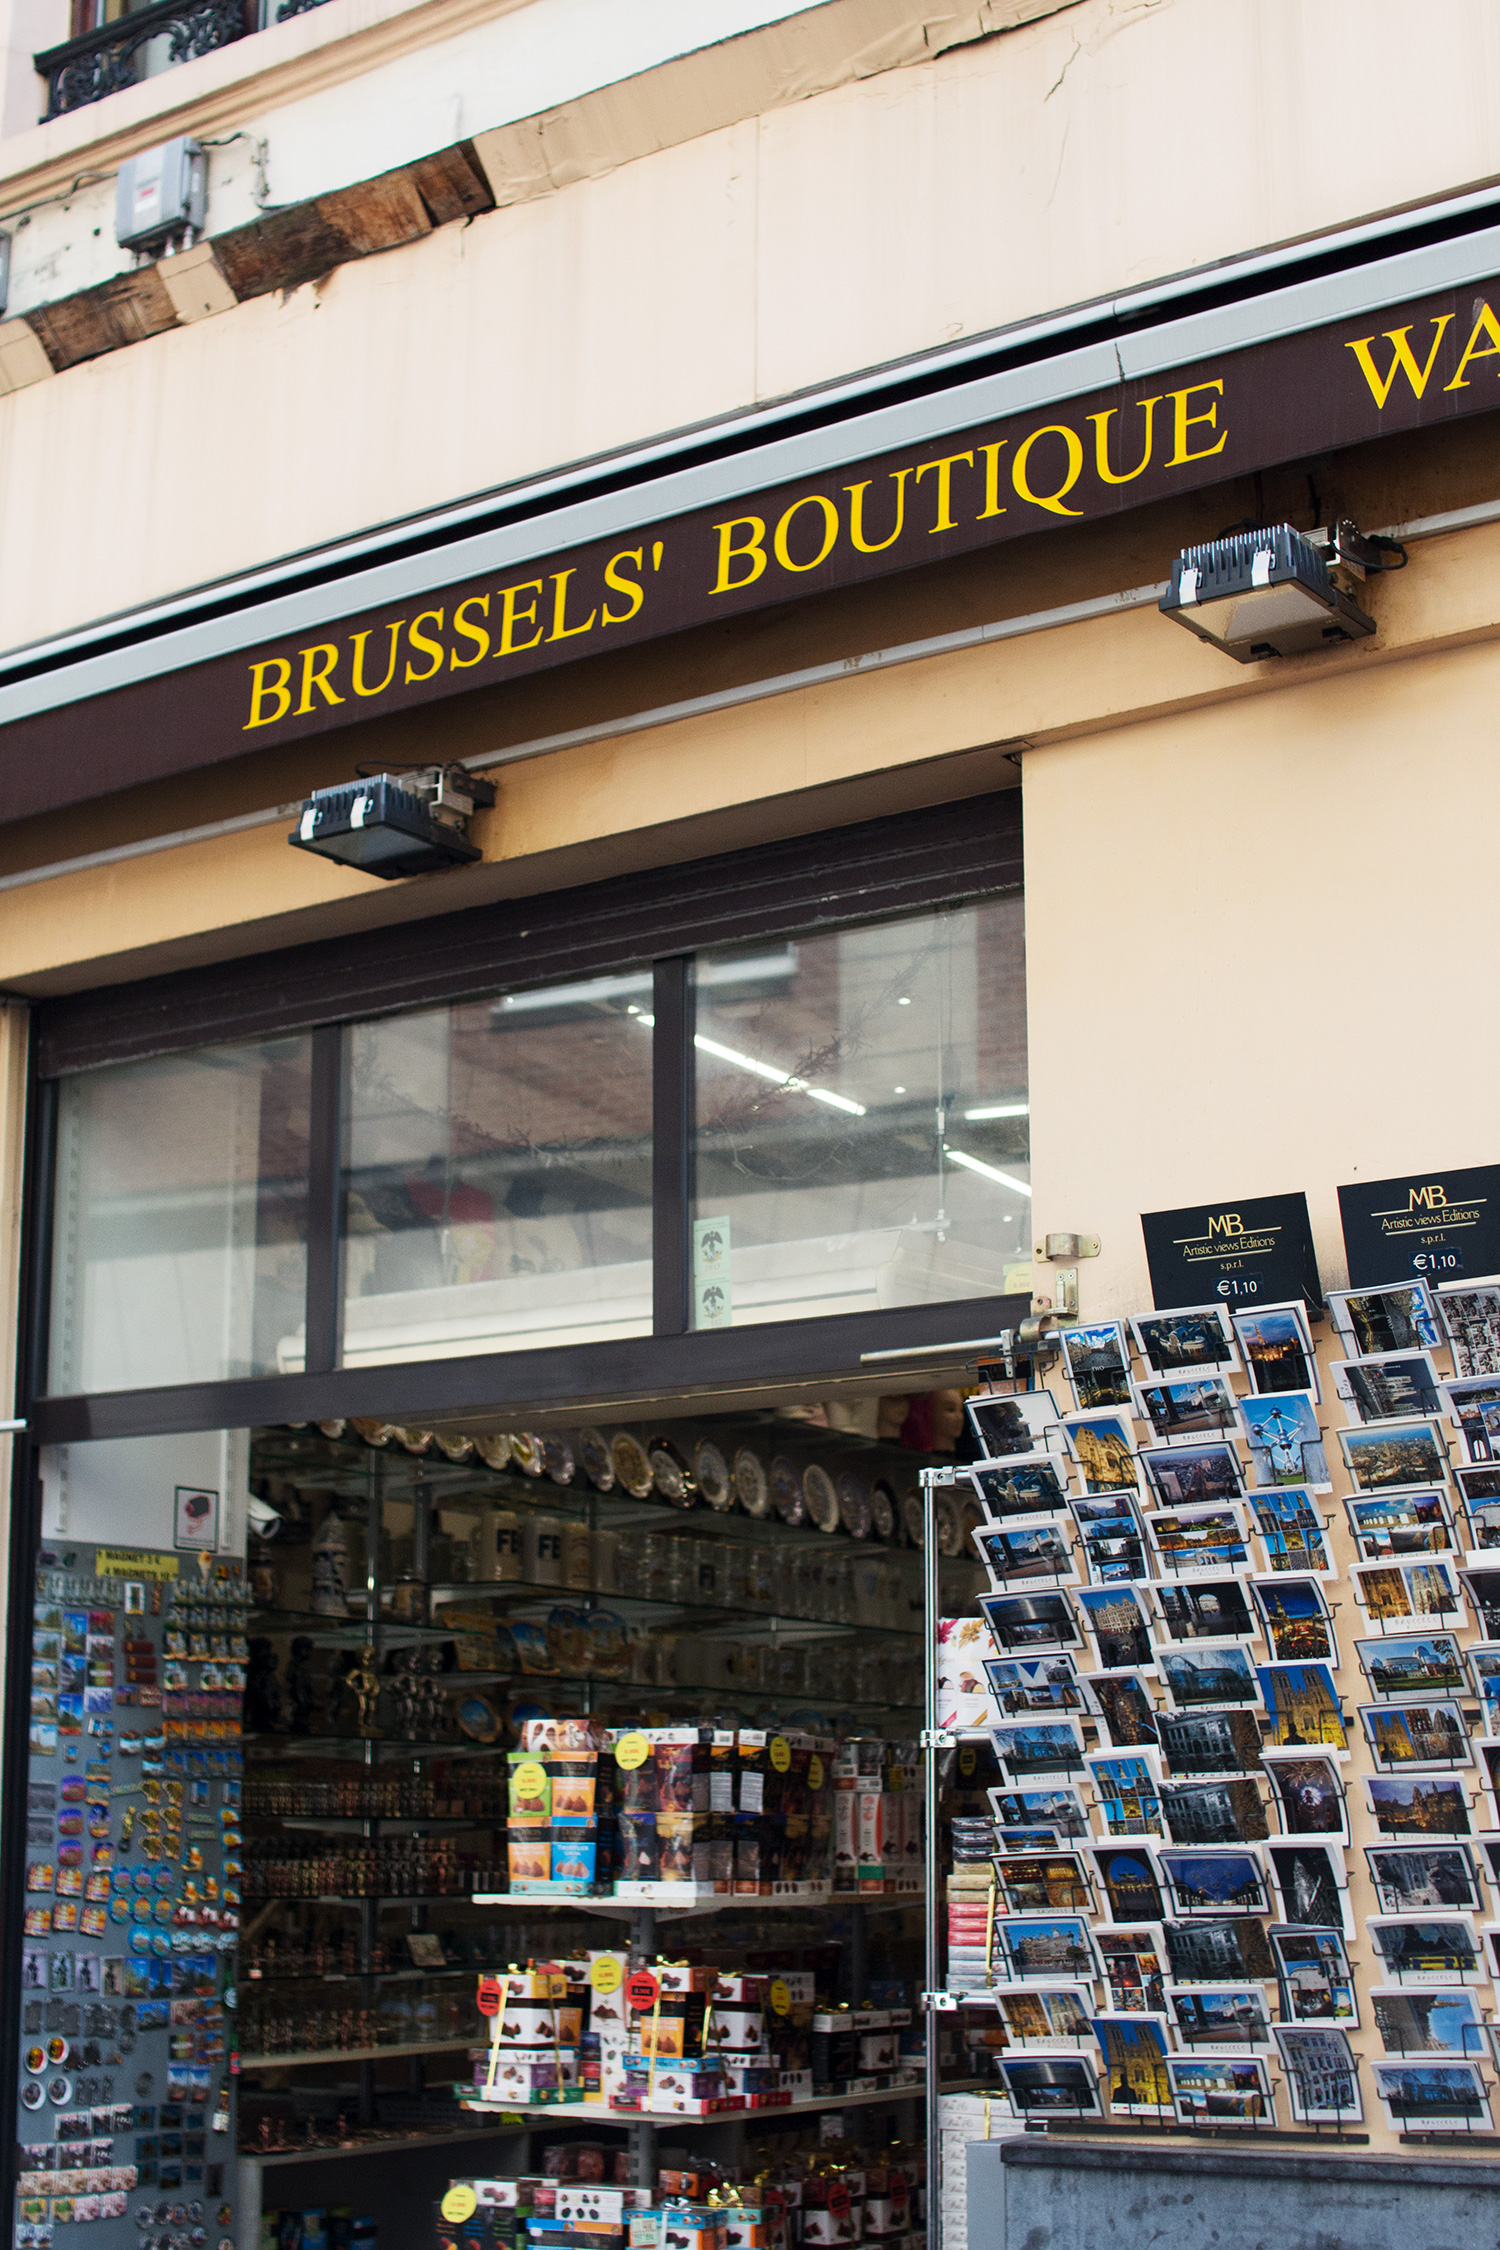 Brussels Boutique tourist store selling postcards